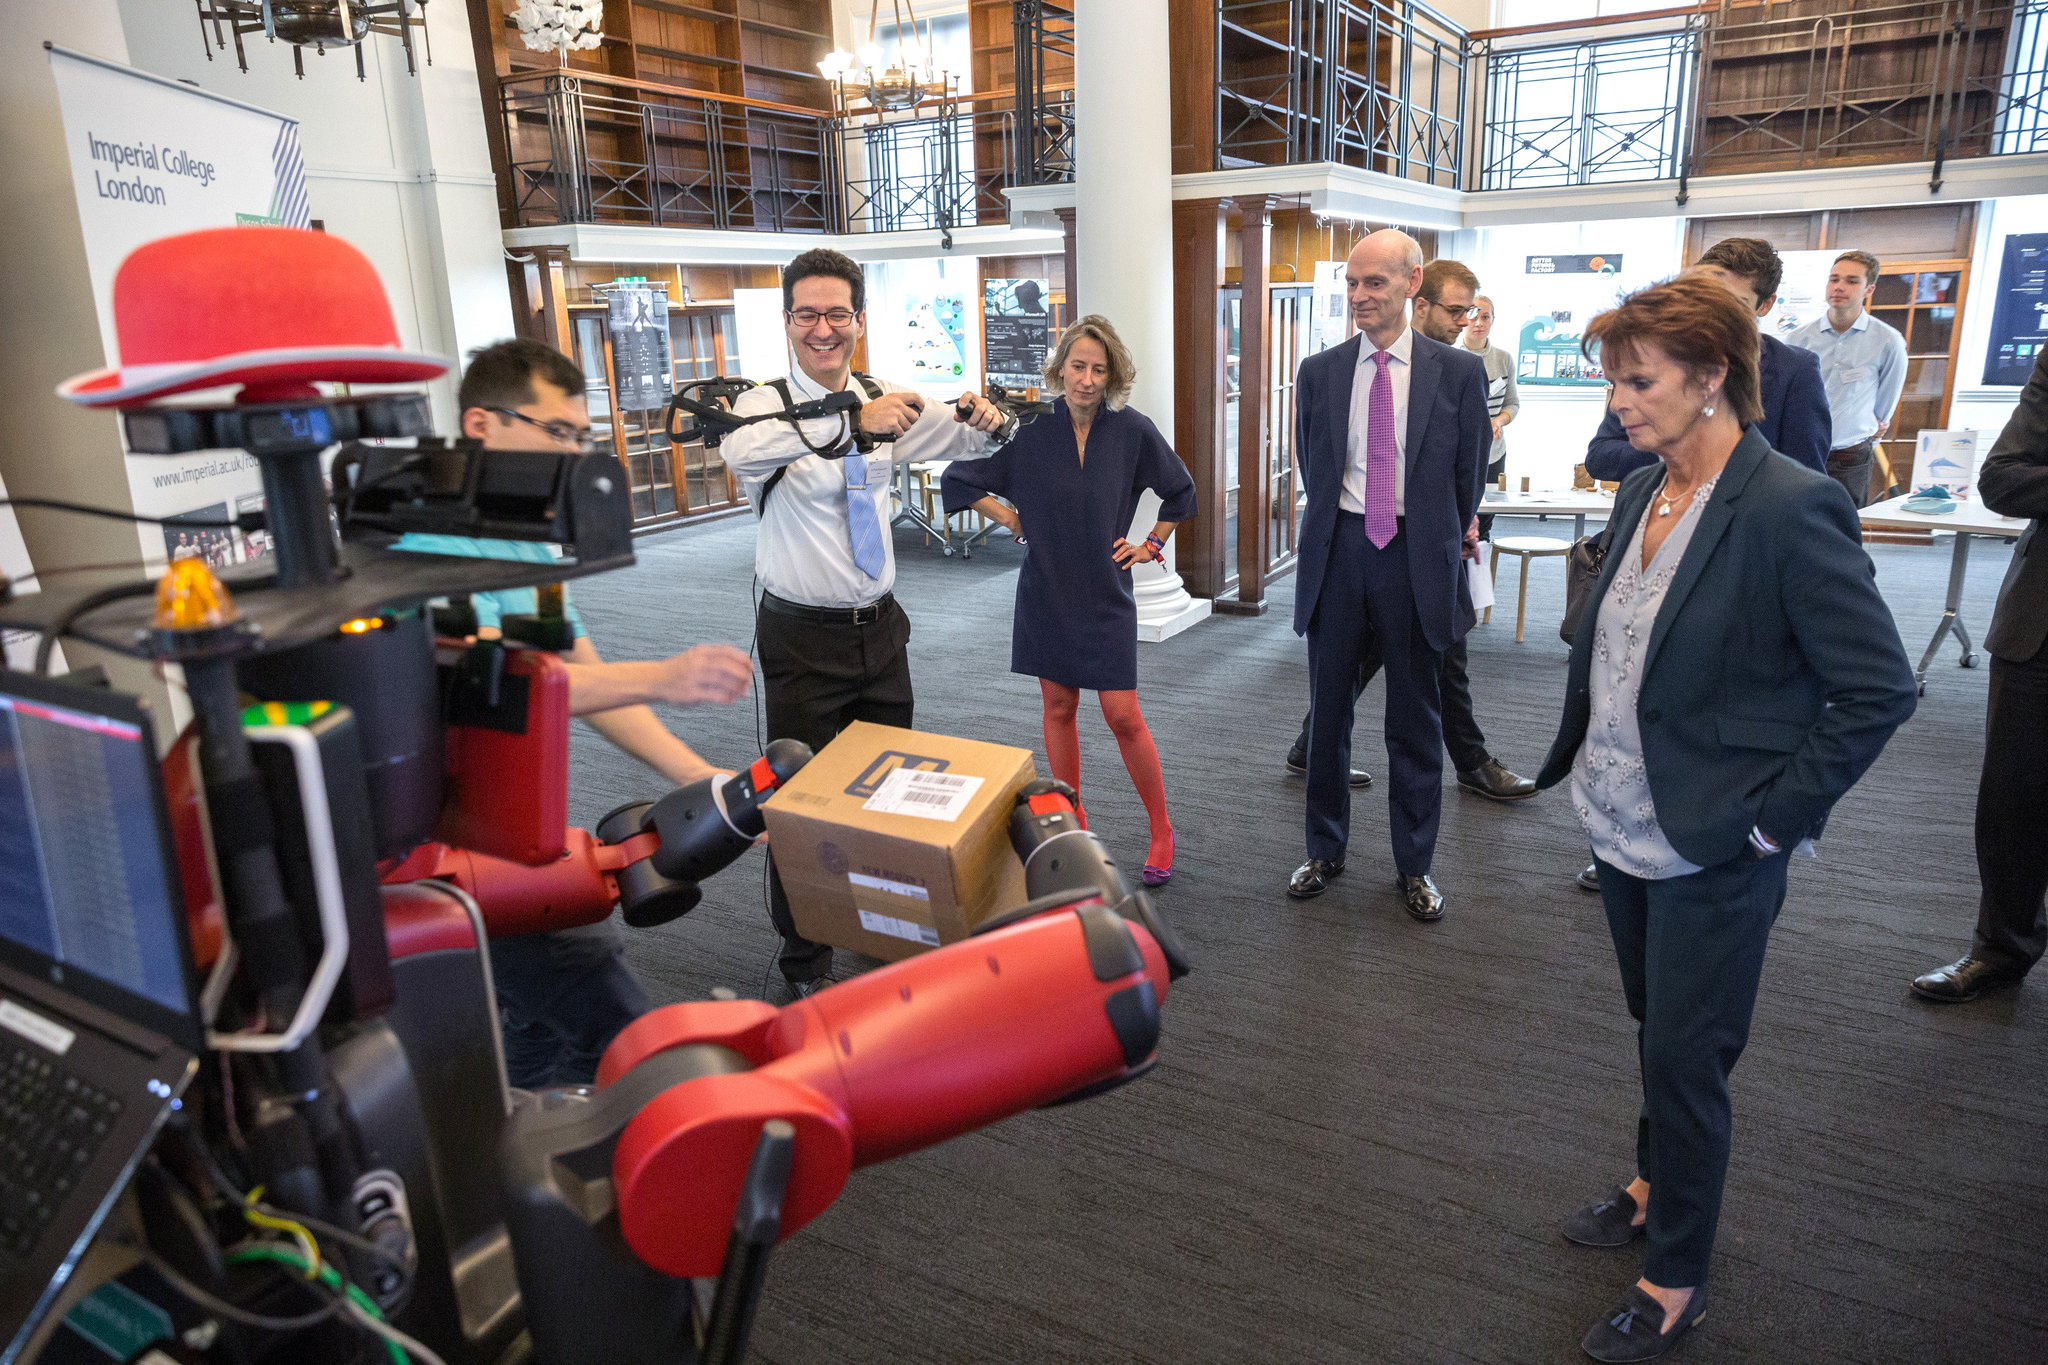 Dyson School Of Design Engineering On Twitter A Pleasure To Welcome Annemilton And Educationgovuk To Show Our Design Engineering Research And Student Projects Today Stem Education Imperialcollege Rca Https T Co Dfmhawafea